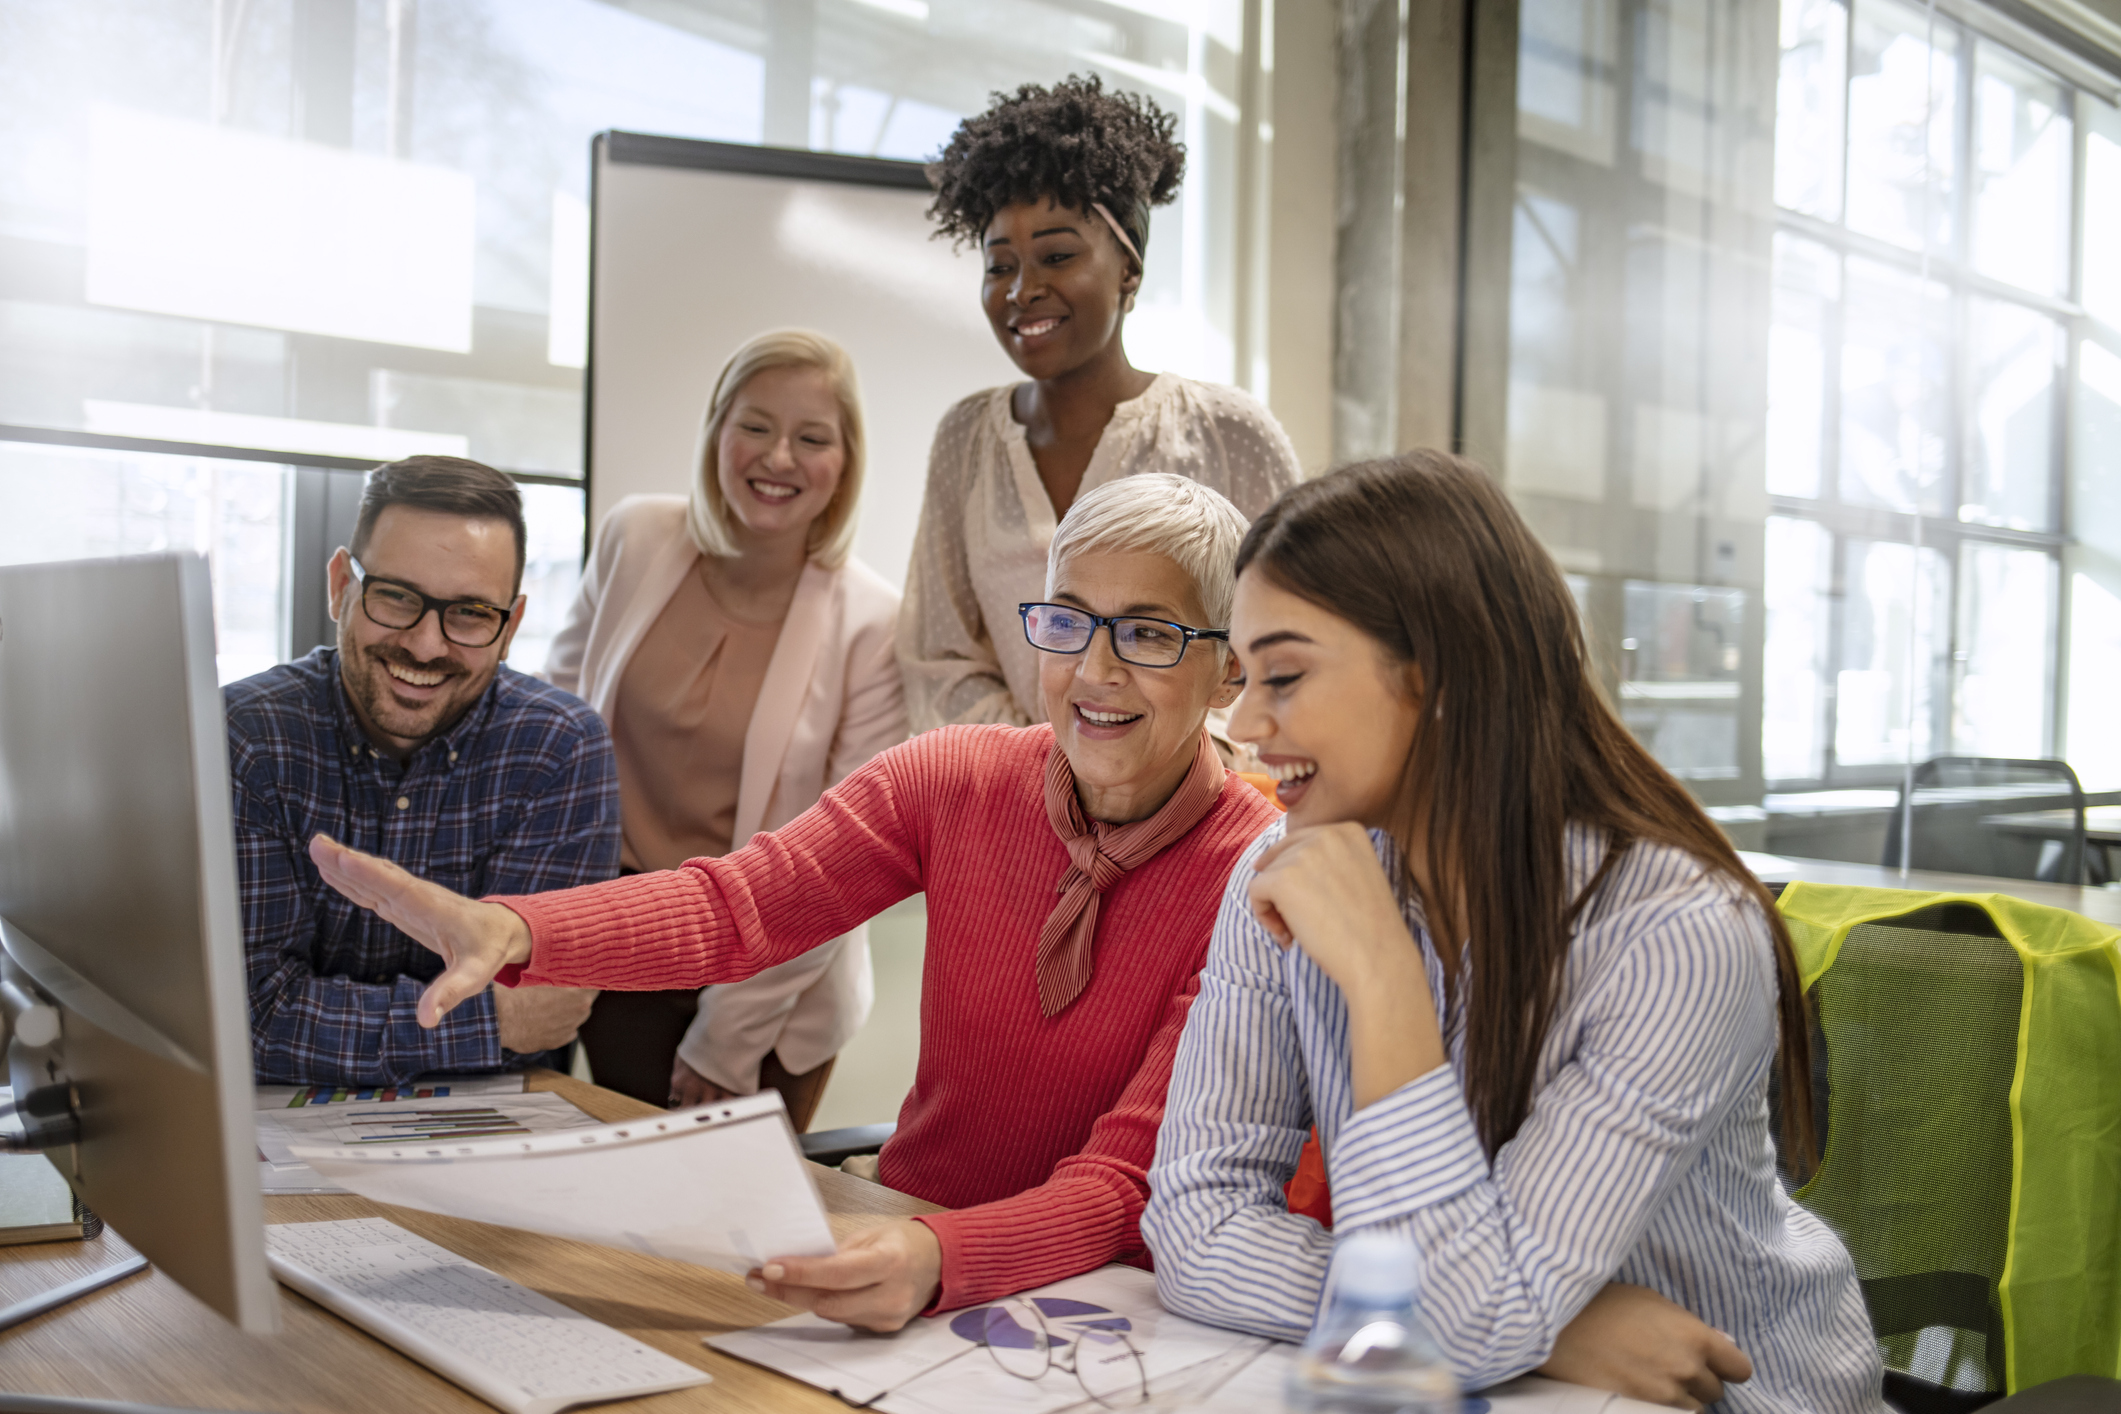 Senior designer giving some new ideas about project to her partners in conference room. Business people discussing over new business project in office. Group of businesspeople or designers work with new startup project in office